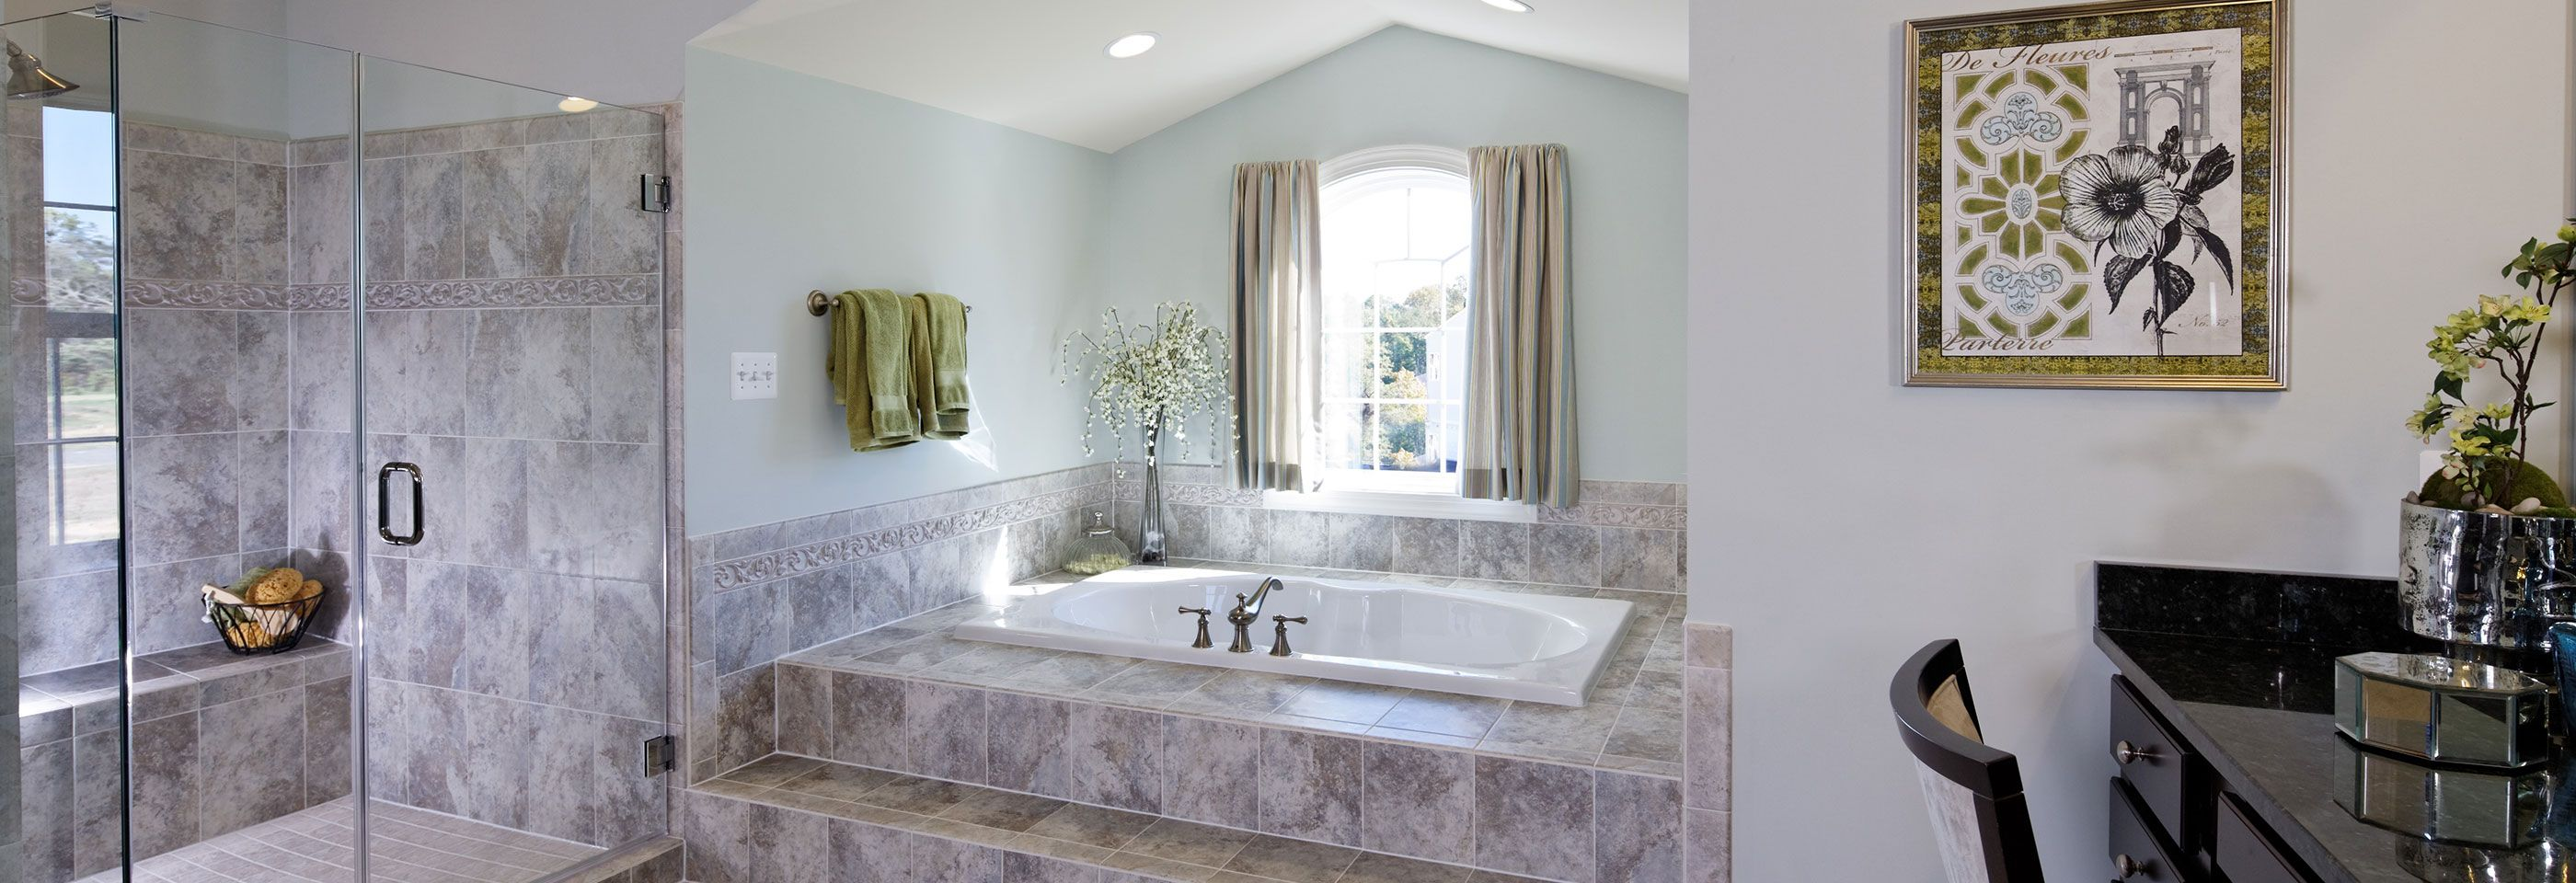 ... The Preserve At Woodmore By Craftmark Homes, 20721 ...